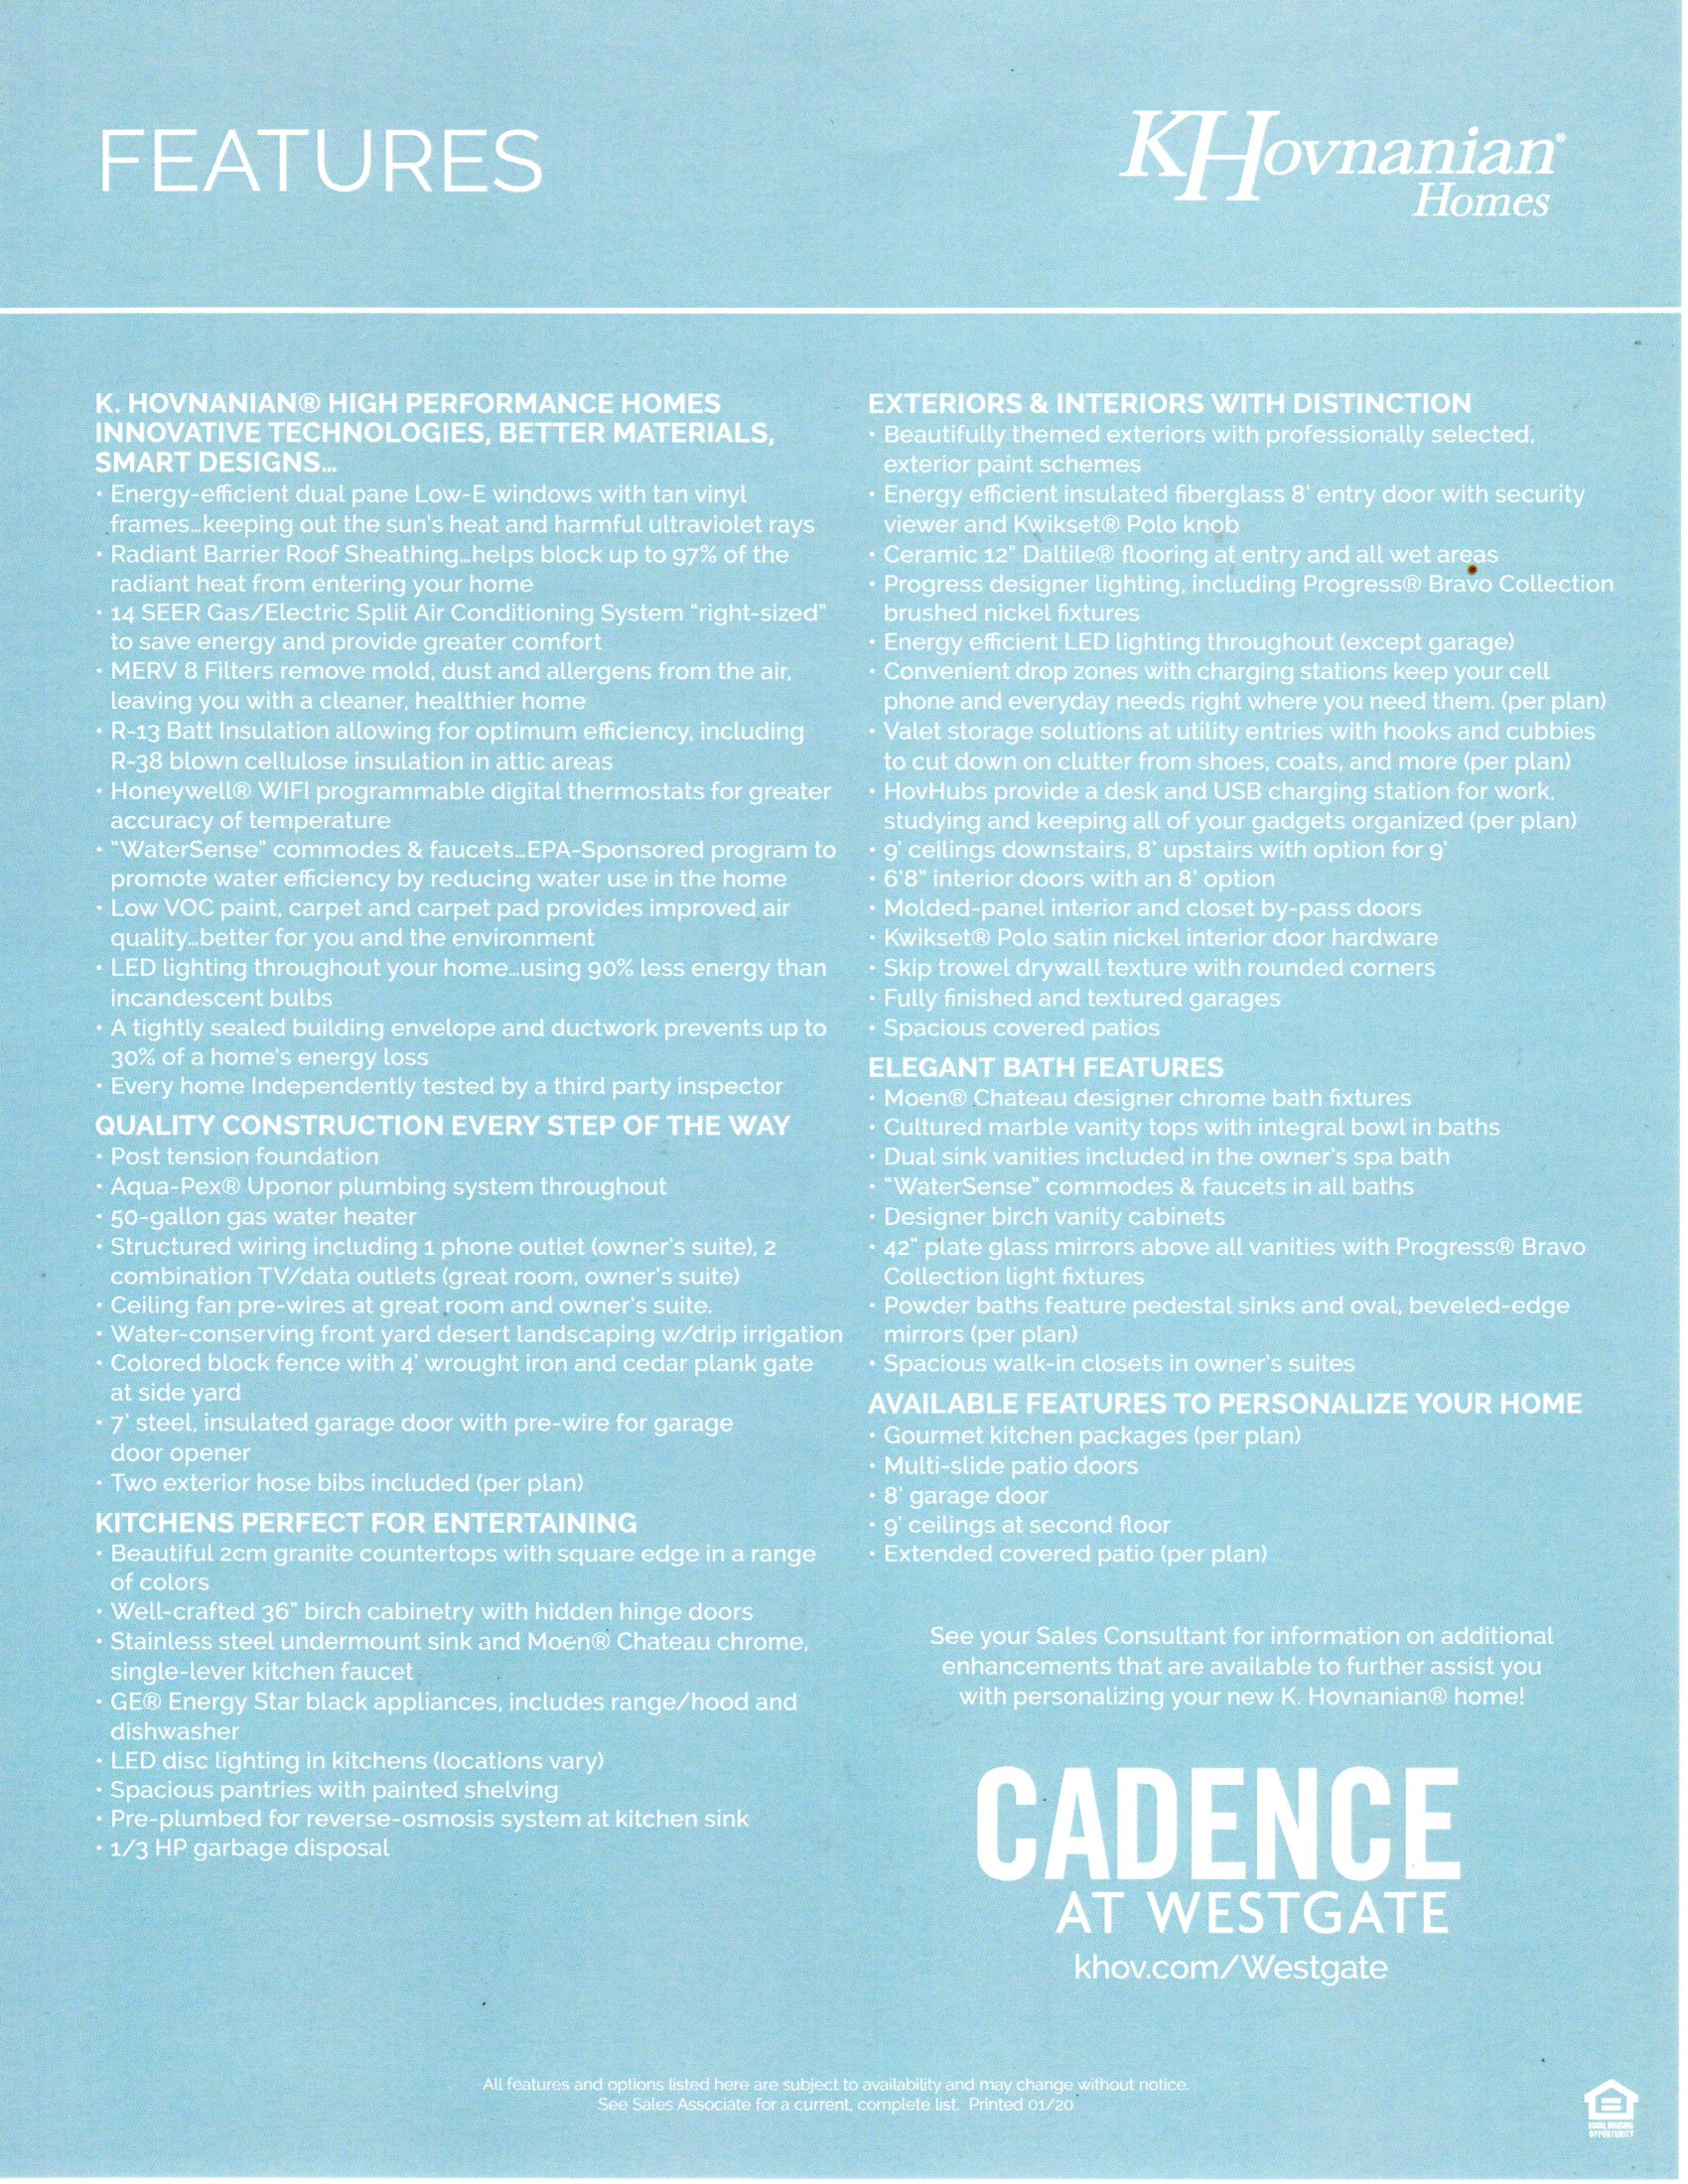 CADENCE - Standard Included Features